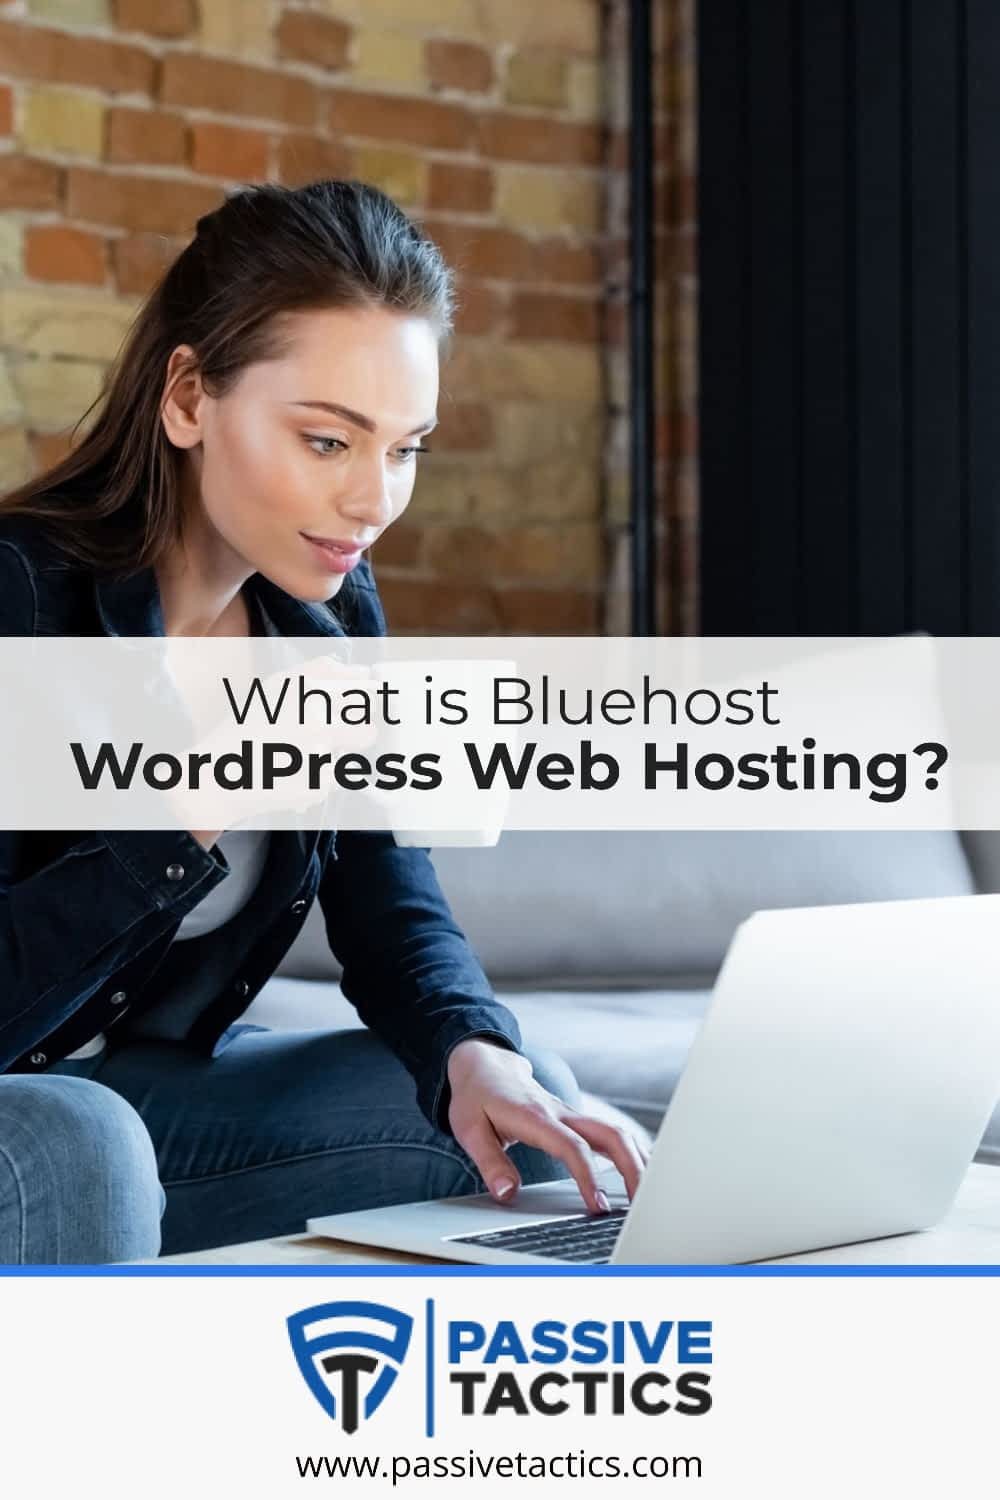 Bluehost Web Hosting Service Review in 2020